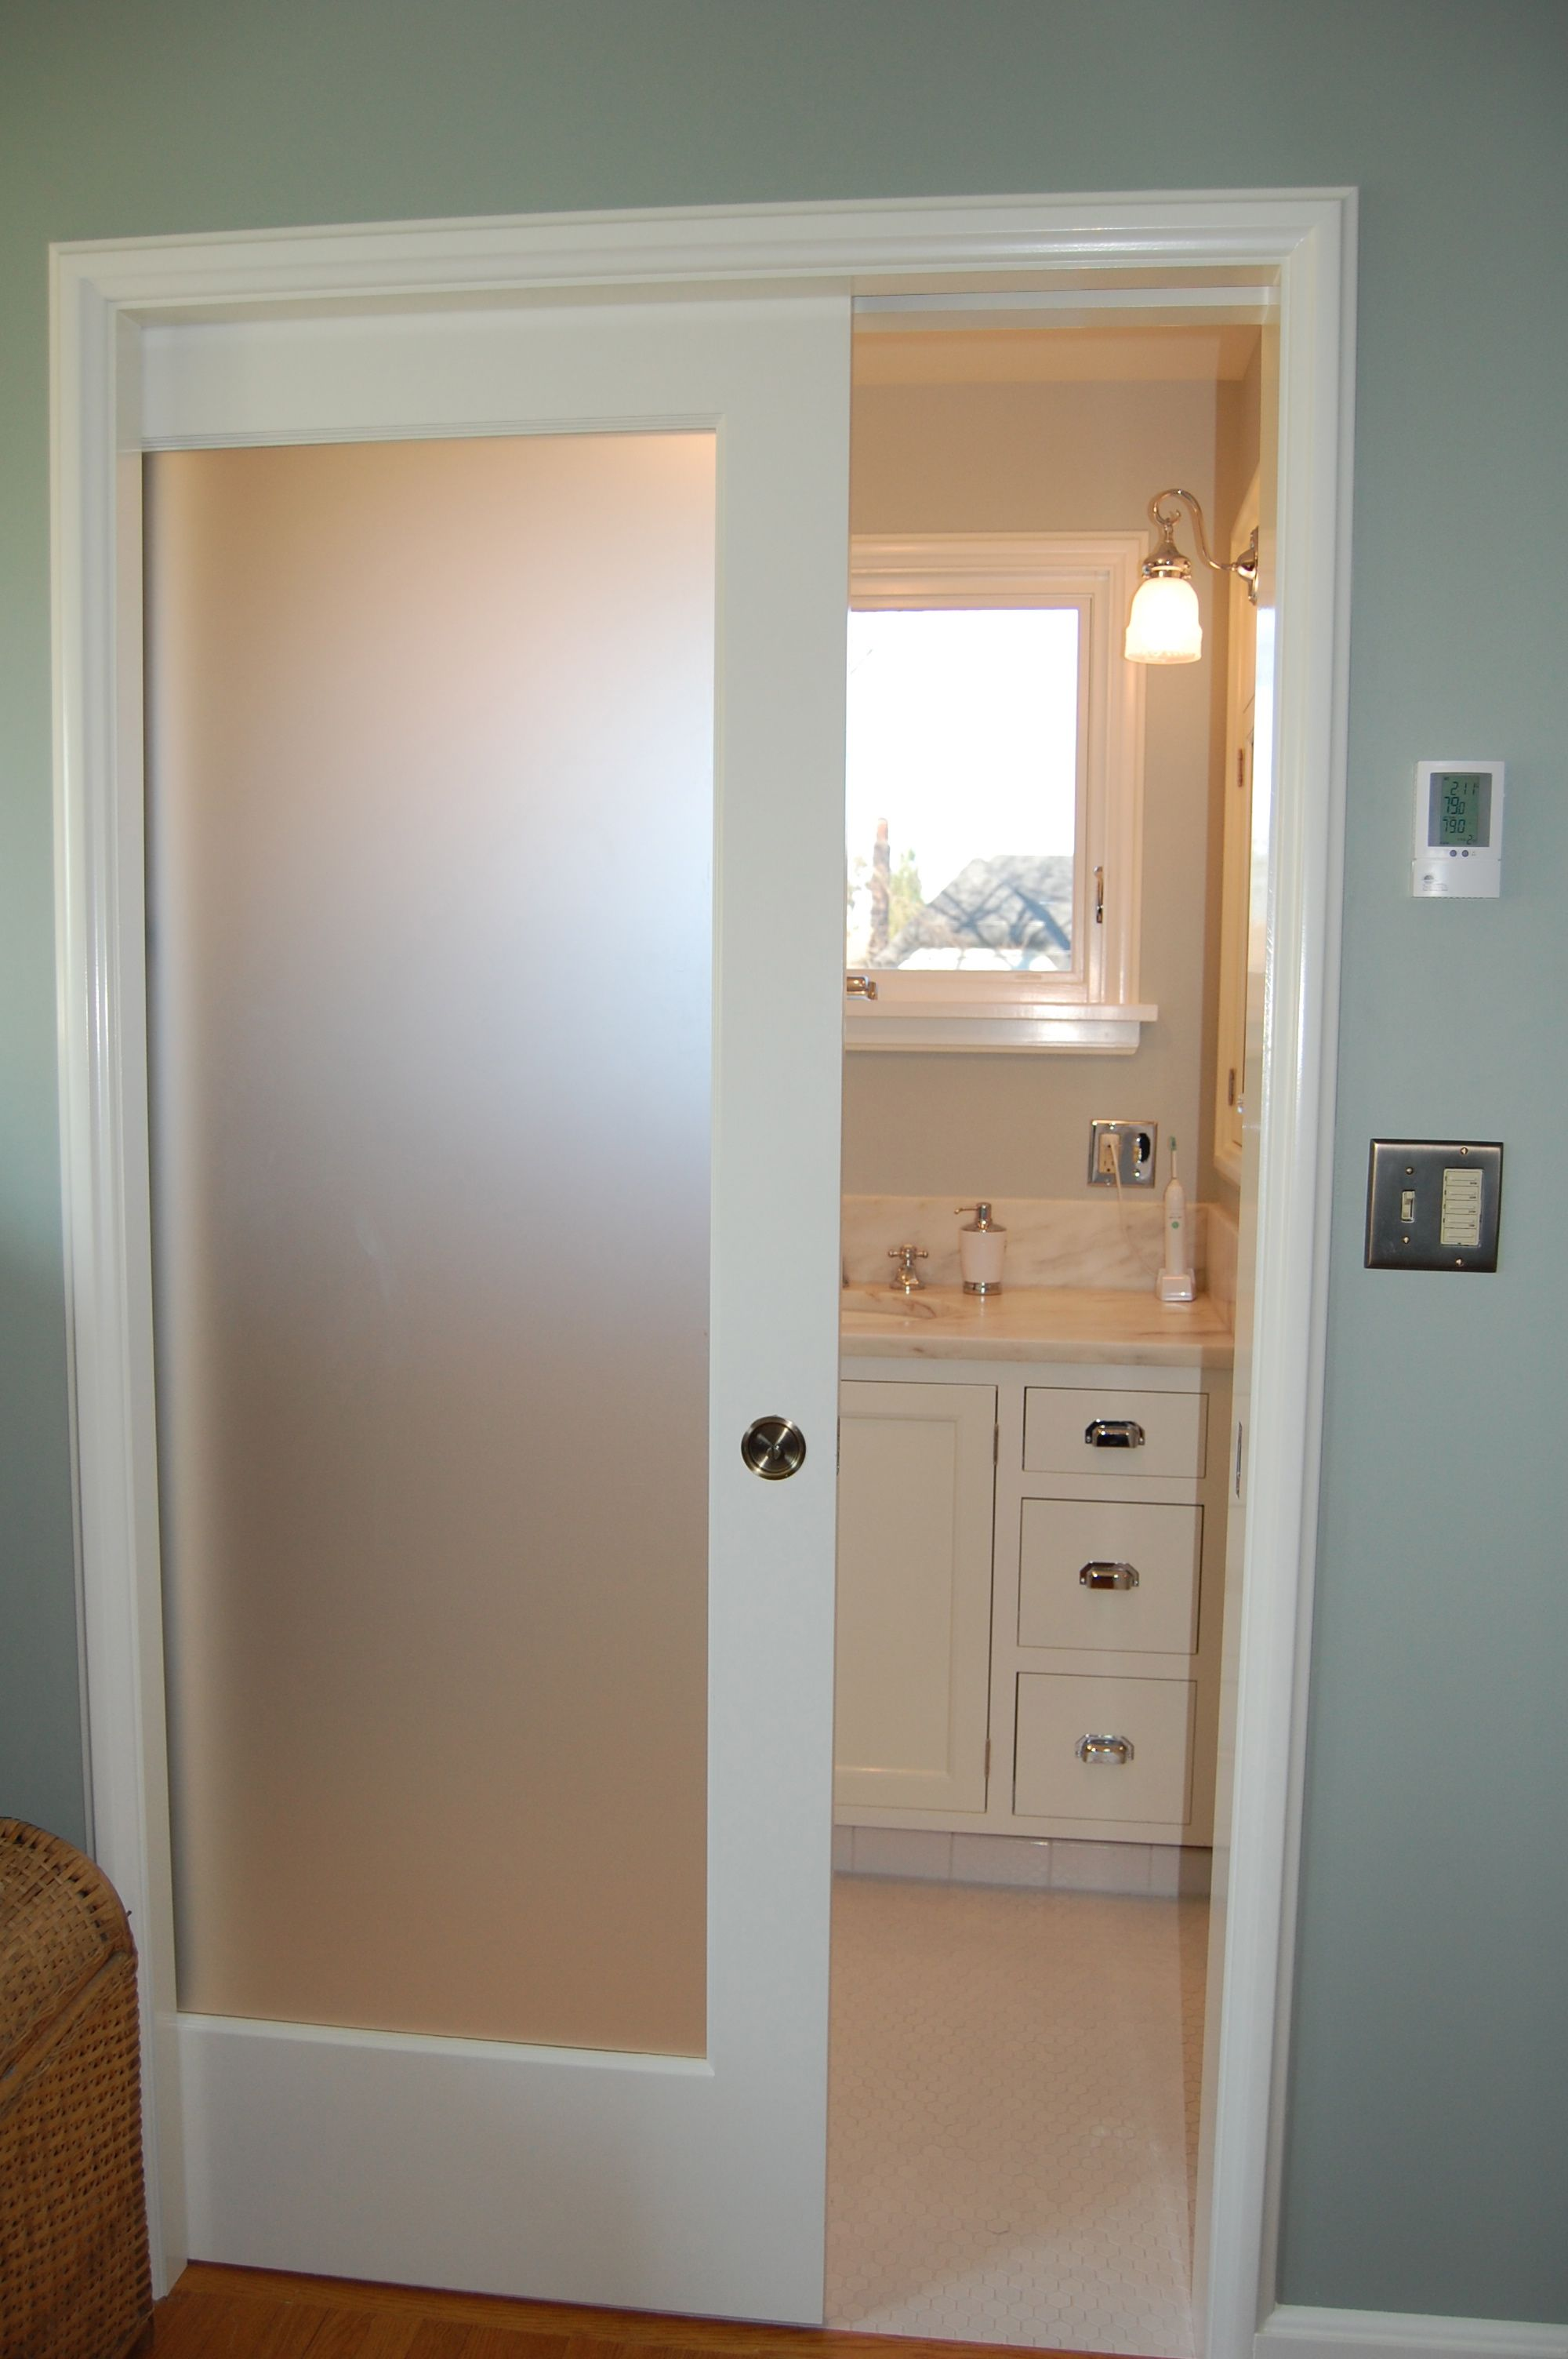 Alameda Remodel Is Complete Pocket Doors Doors And Glass